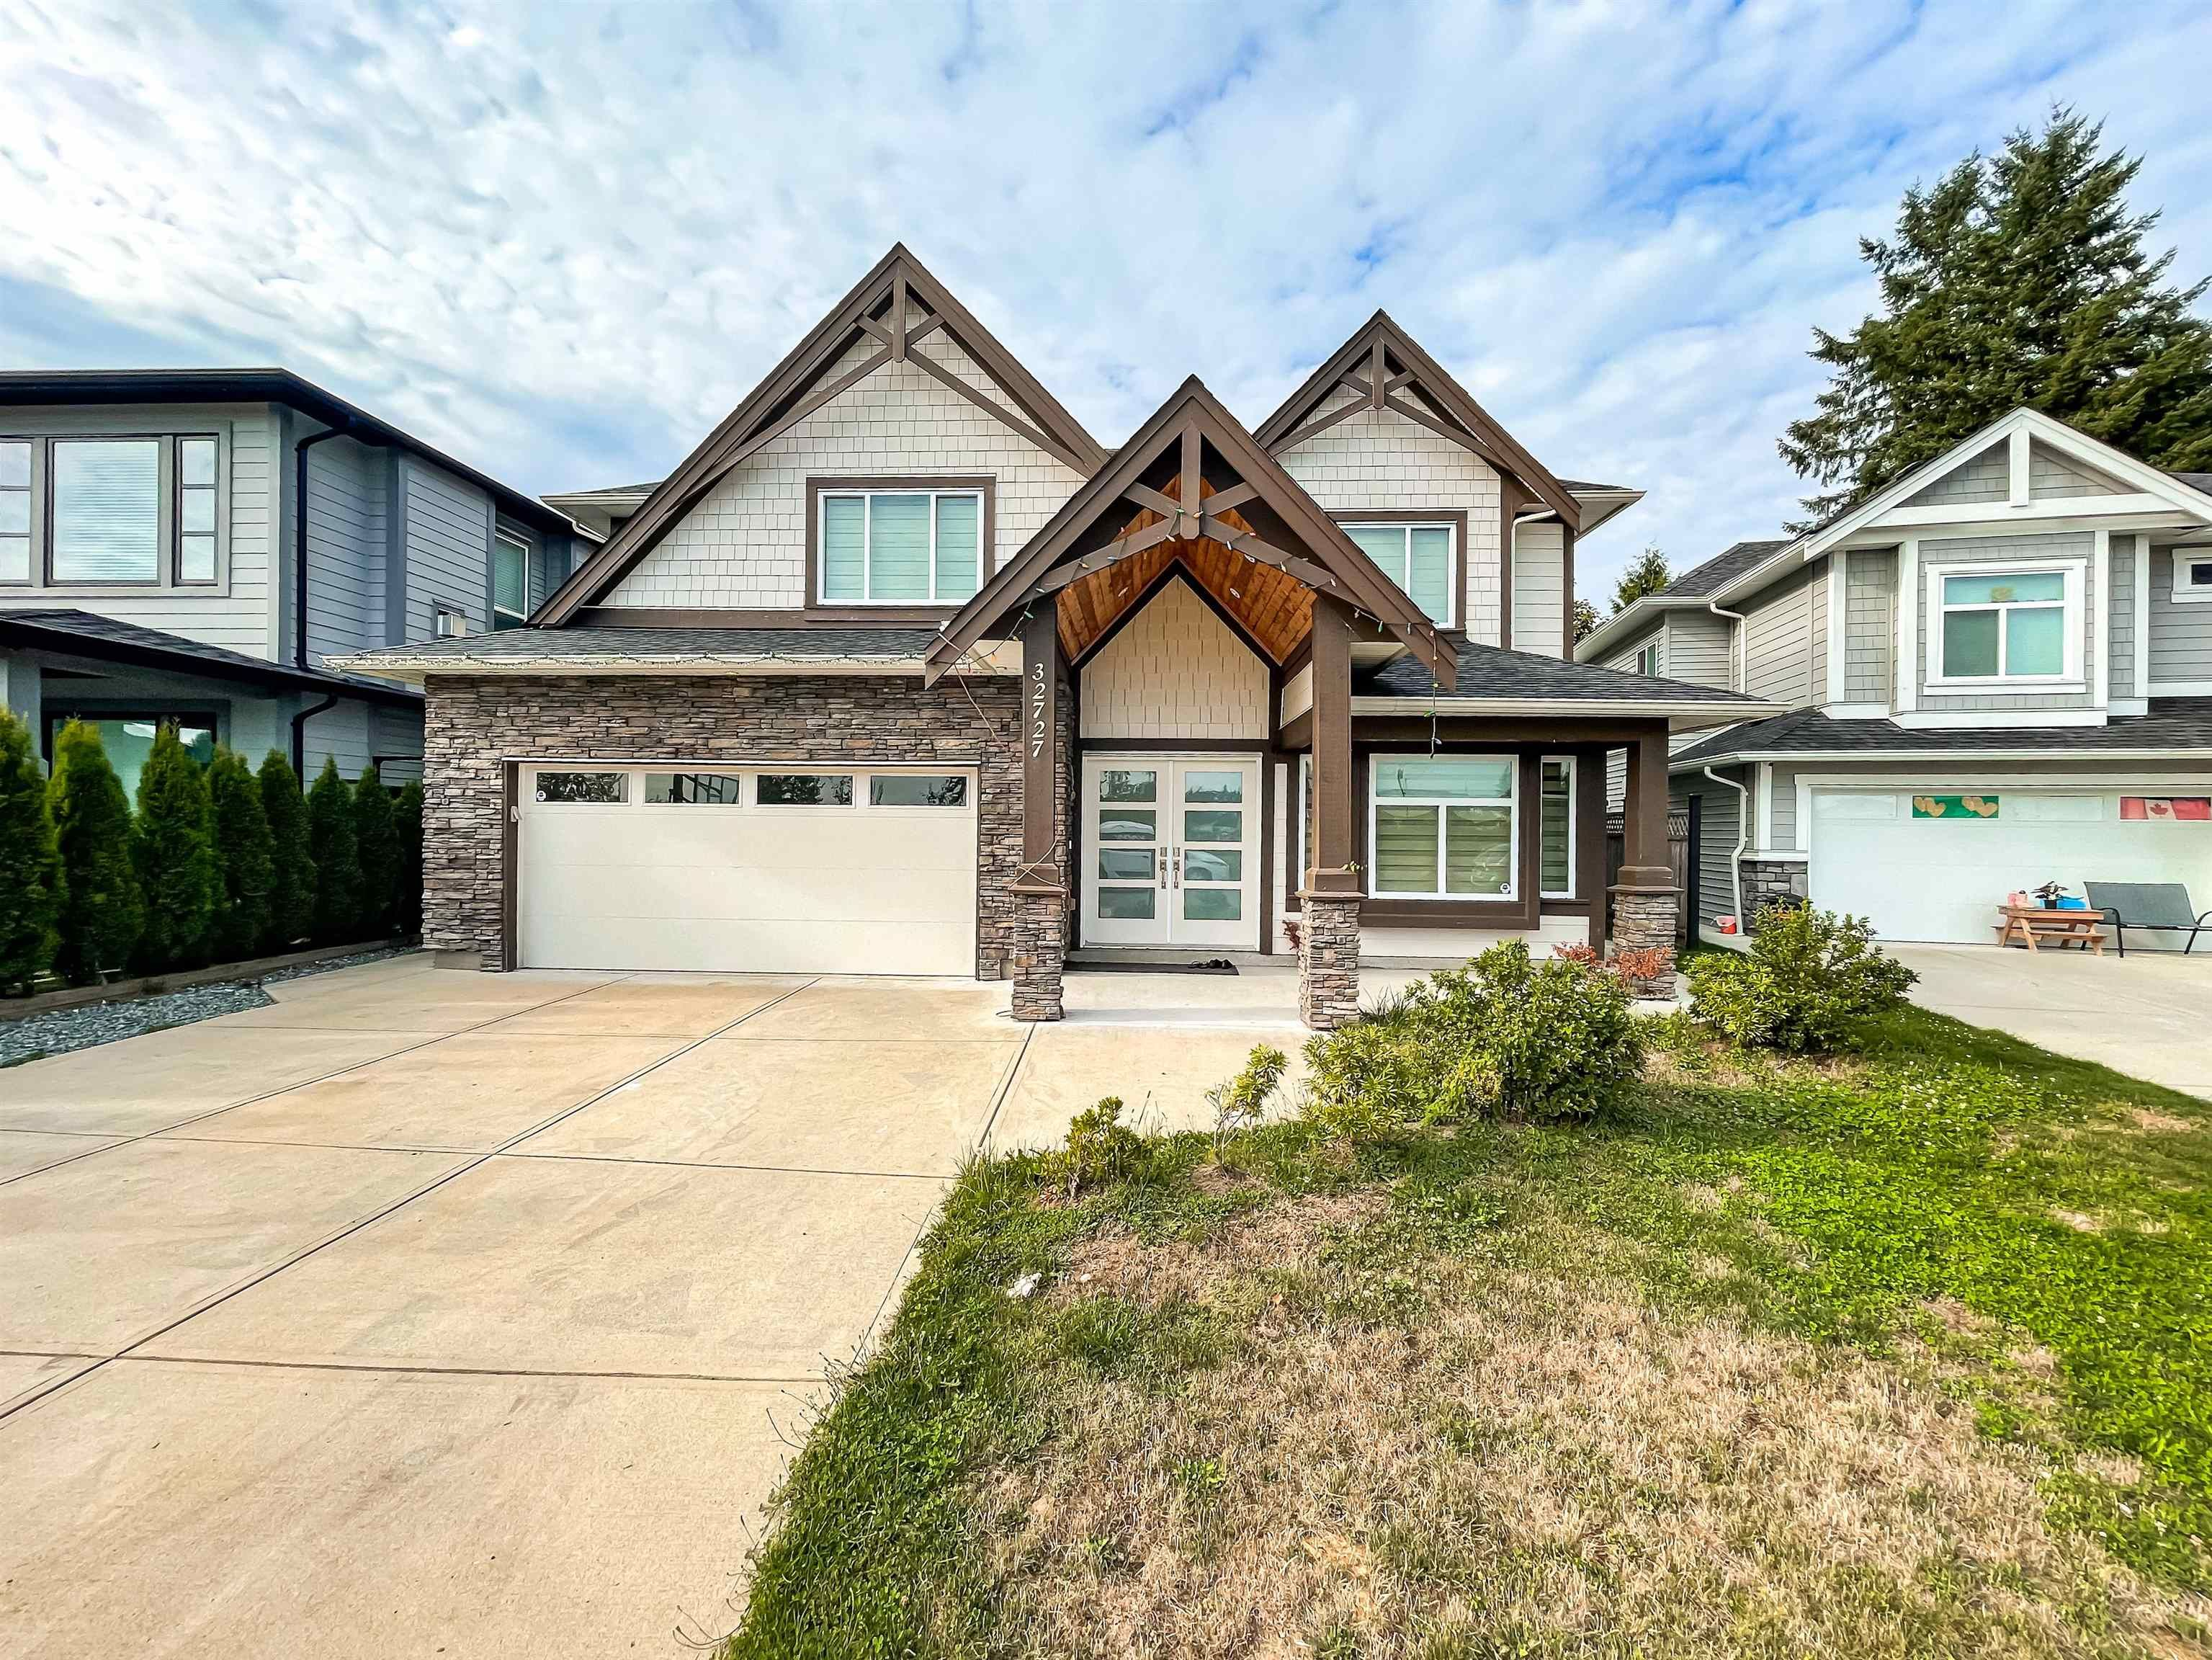 Main Photo: 32727 UNGER Court in Mission: Mission BC House for sale : MLS®# R2616079